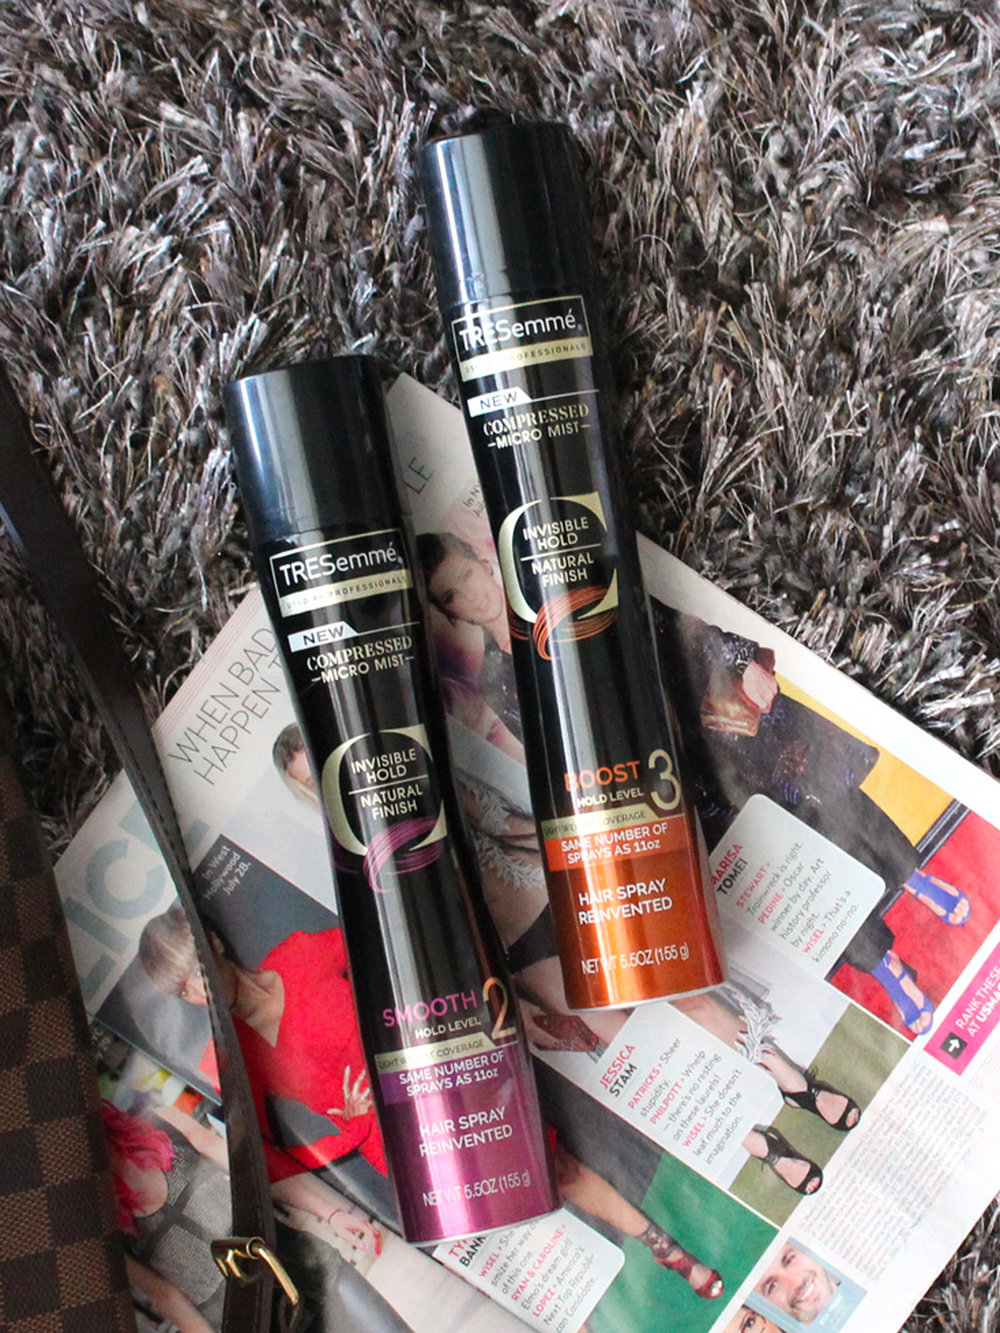 TRESemme Micro-Mist Hair Spray